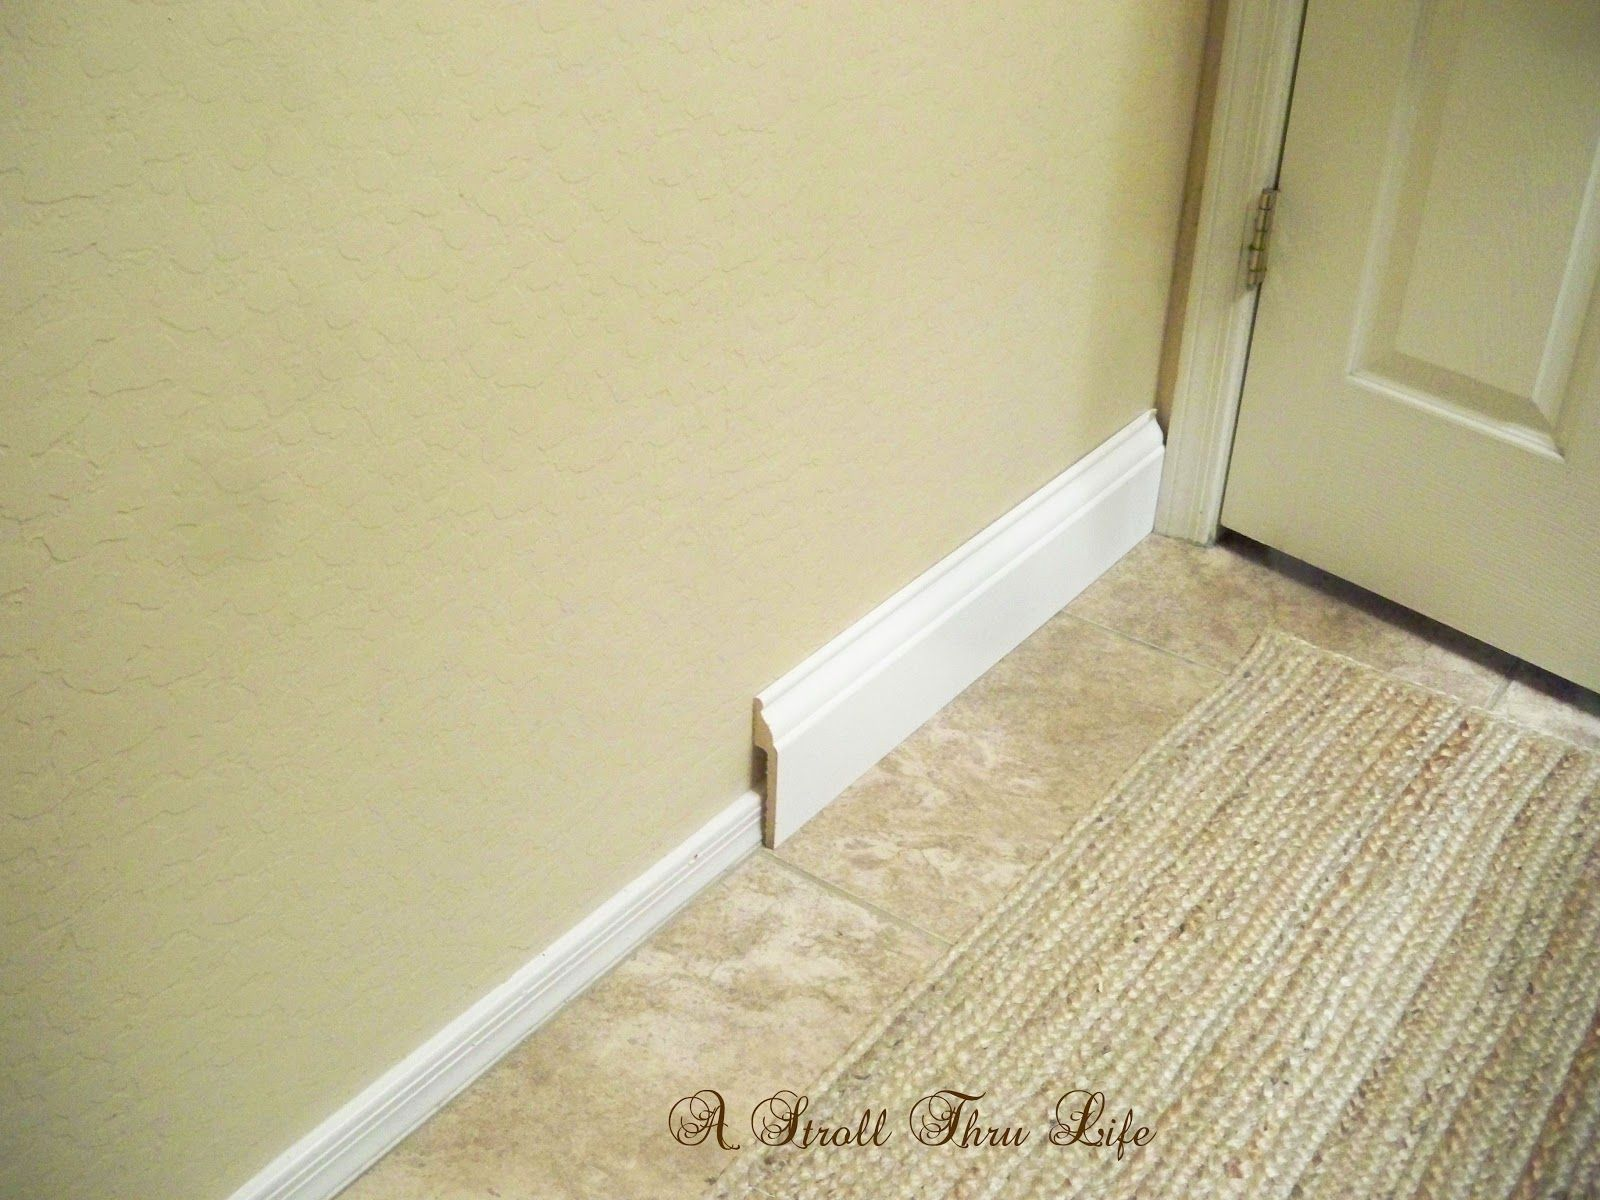 Install Wide Baseboard Molding Over Existing Narrow Baseboard ...